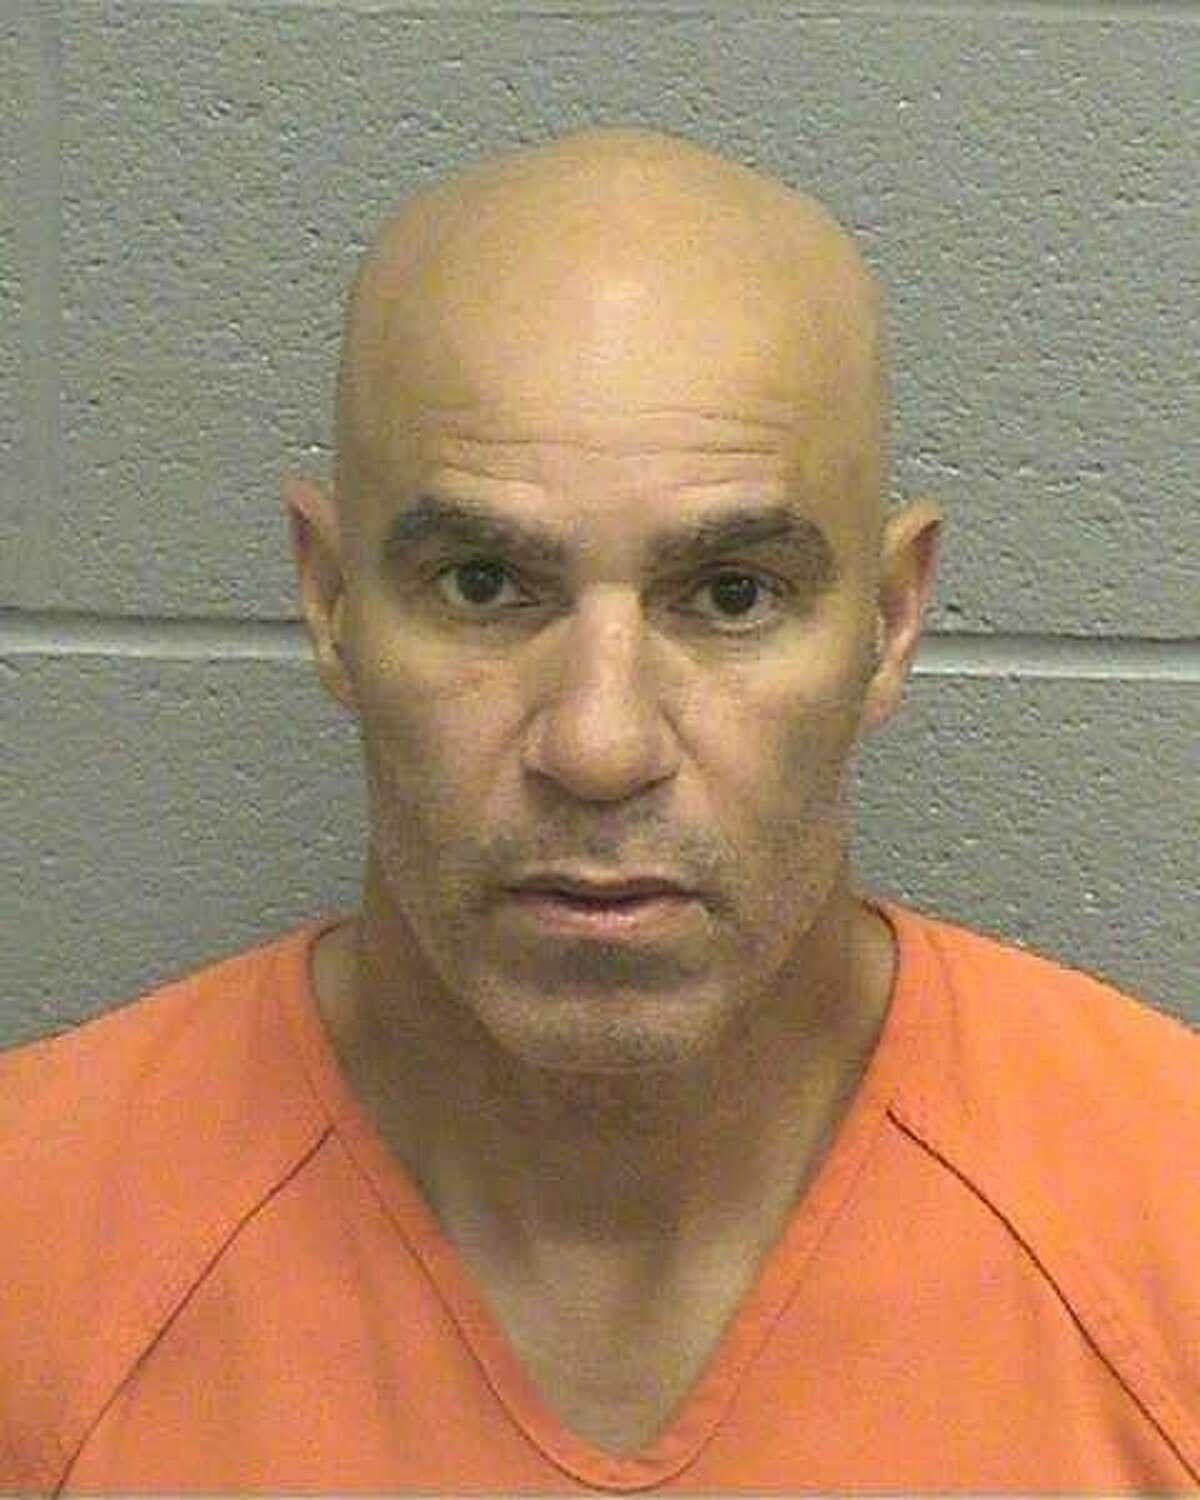 Gregory Golden, 53, was being held Monday on a $75,000 bond for a first-degree felony of aggravated assault of a date/family/house member after allegedly threatening a woman with a knife and throwing a rock at her.Midland police officers were dispatched to a residence on Saturday after a call about an assault. A woman said that she was in the bedroom of her residence when Golden entered with a knife and told her that she was not to leave the bedroom, according to the affidavit.If convicted of the first-degree felony, Golden could face up to 99 years in prison.